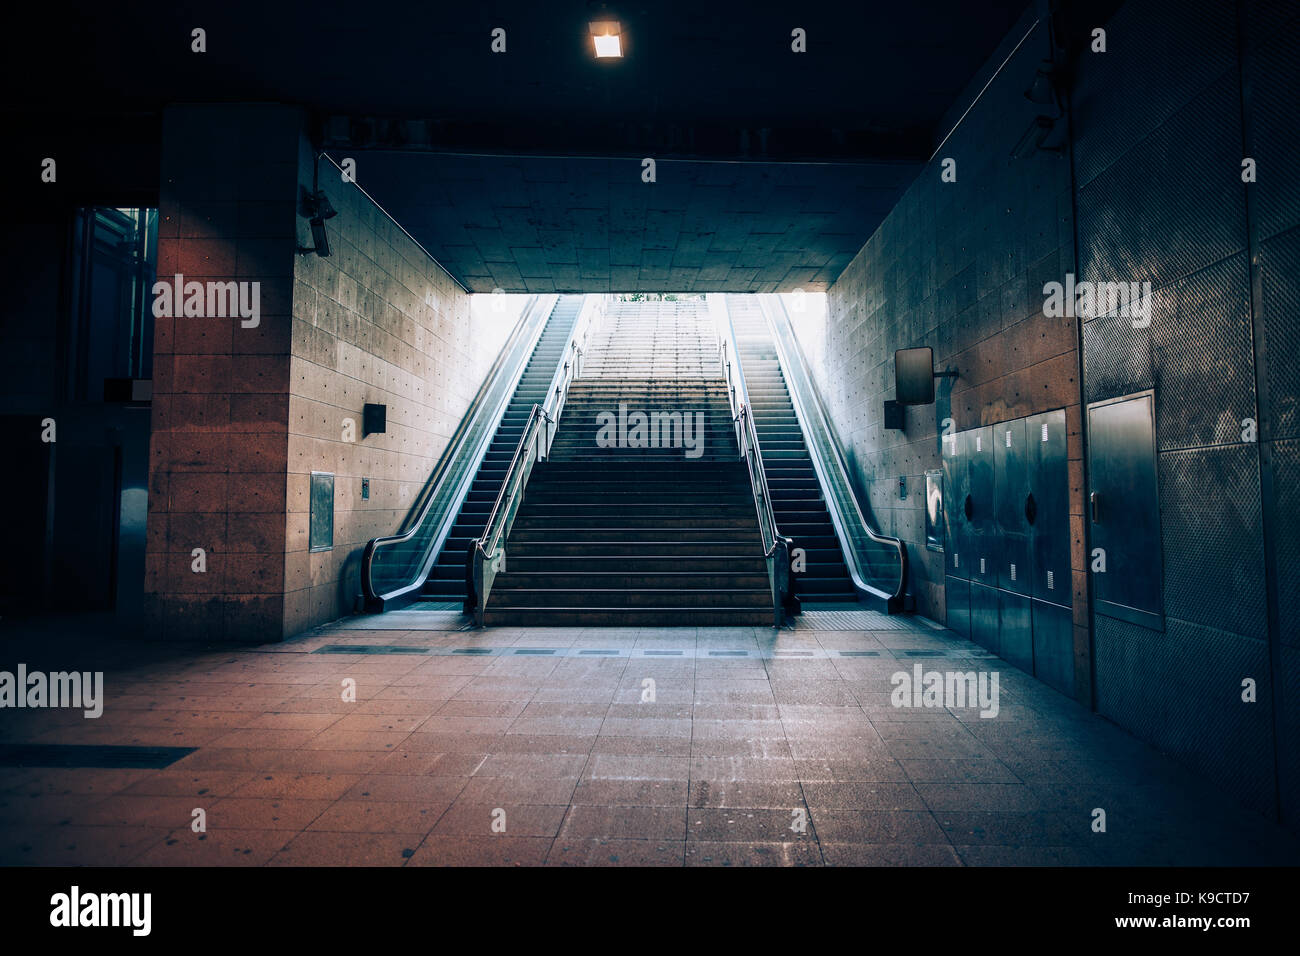 Exit with escalator from the underground metro. Light at the end of the tunnel concept - Stock Image